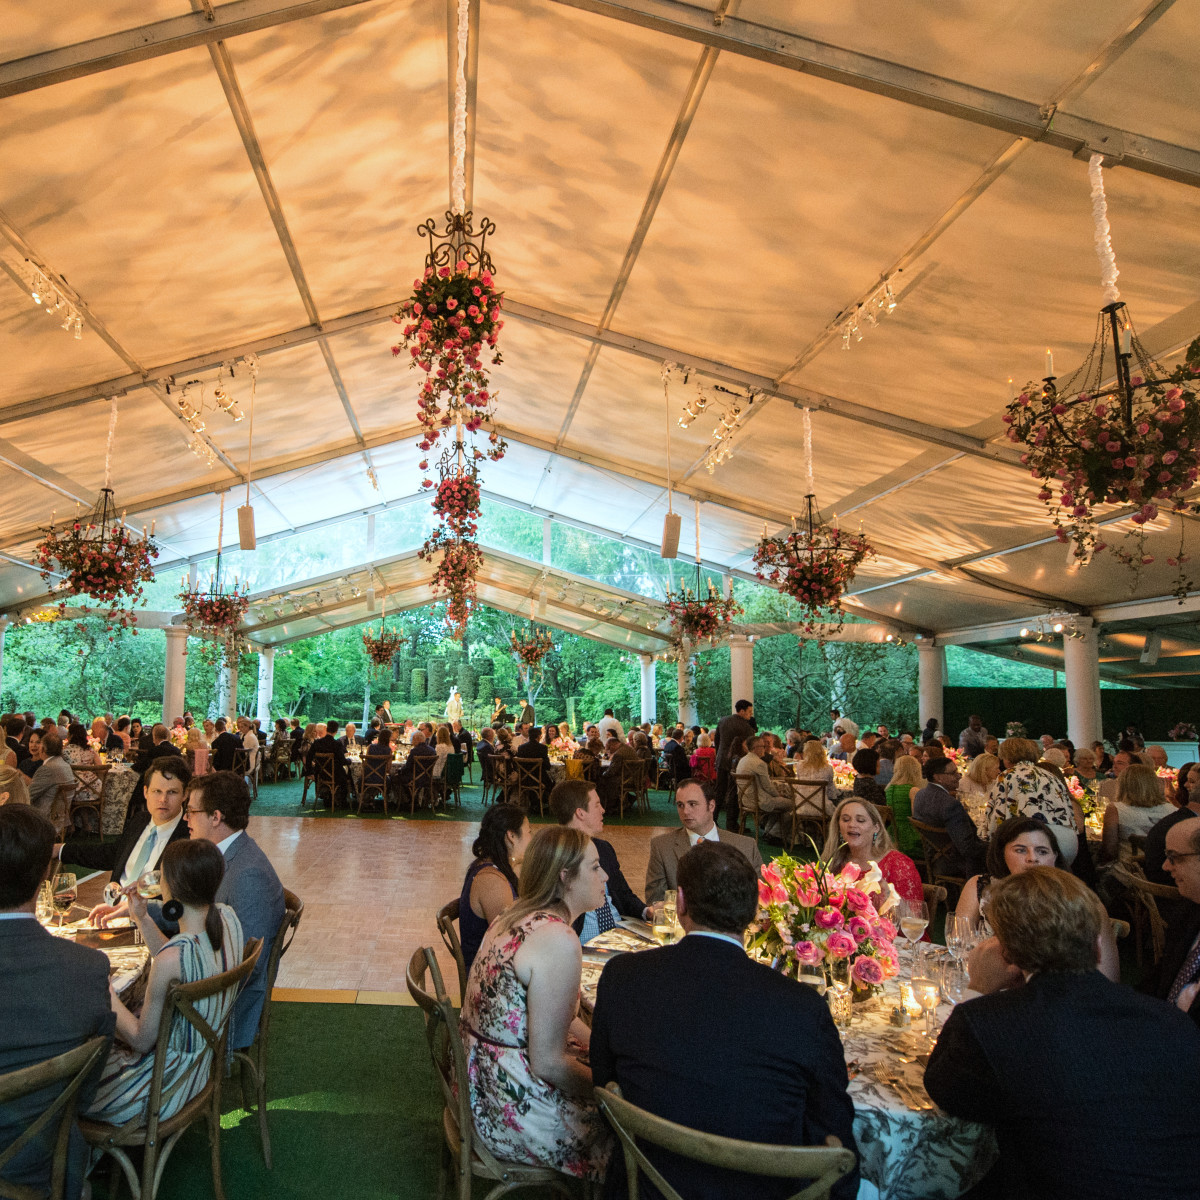 Houston, Bayou Bend Garden party, April 2017, Bayou Bend Garden Party decor